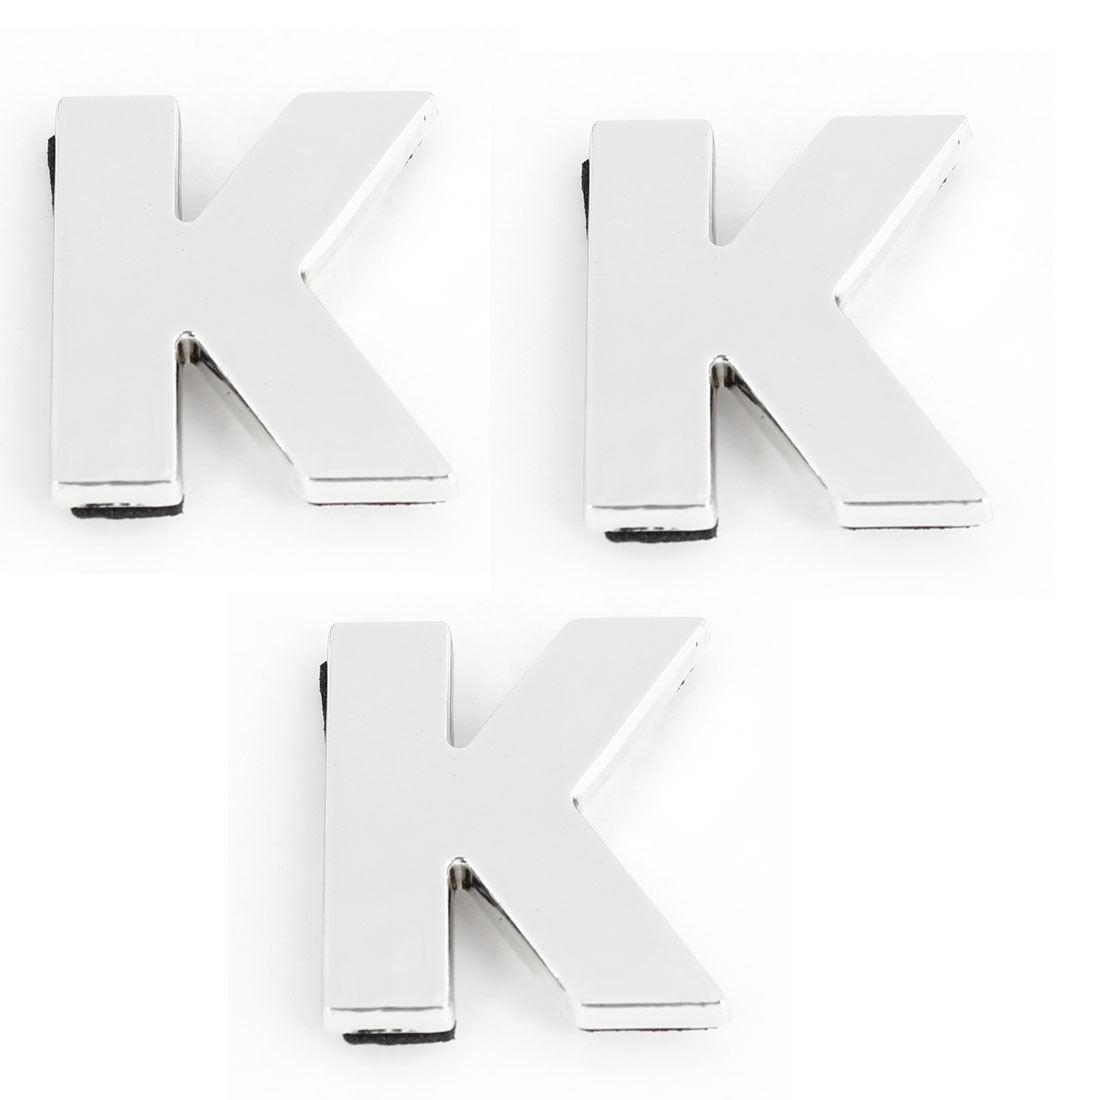 Auto Car Silver Tone Plastic English Letter K 3D Emblem Badge Stickers 3pcs